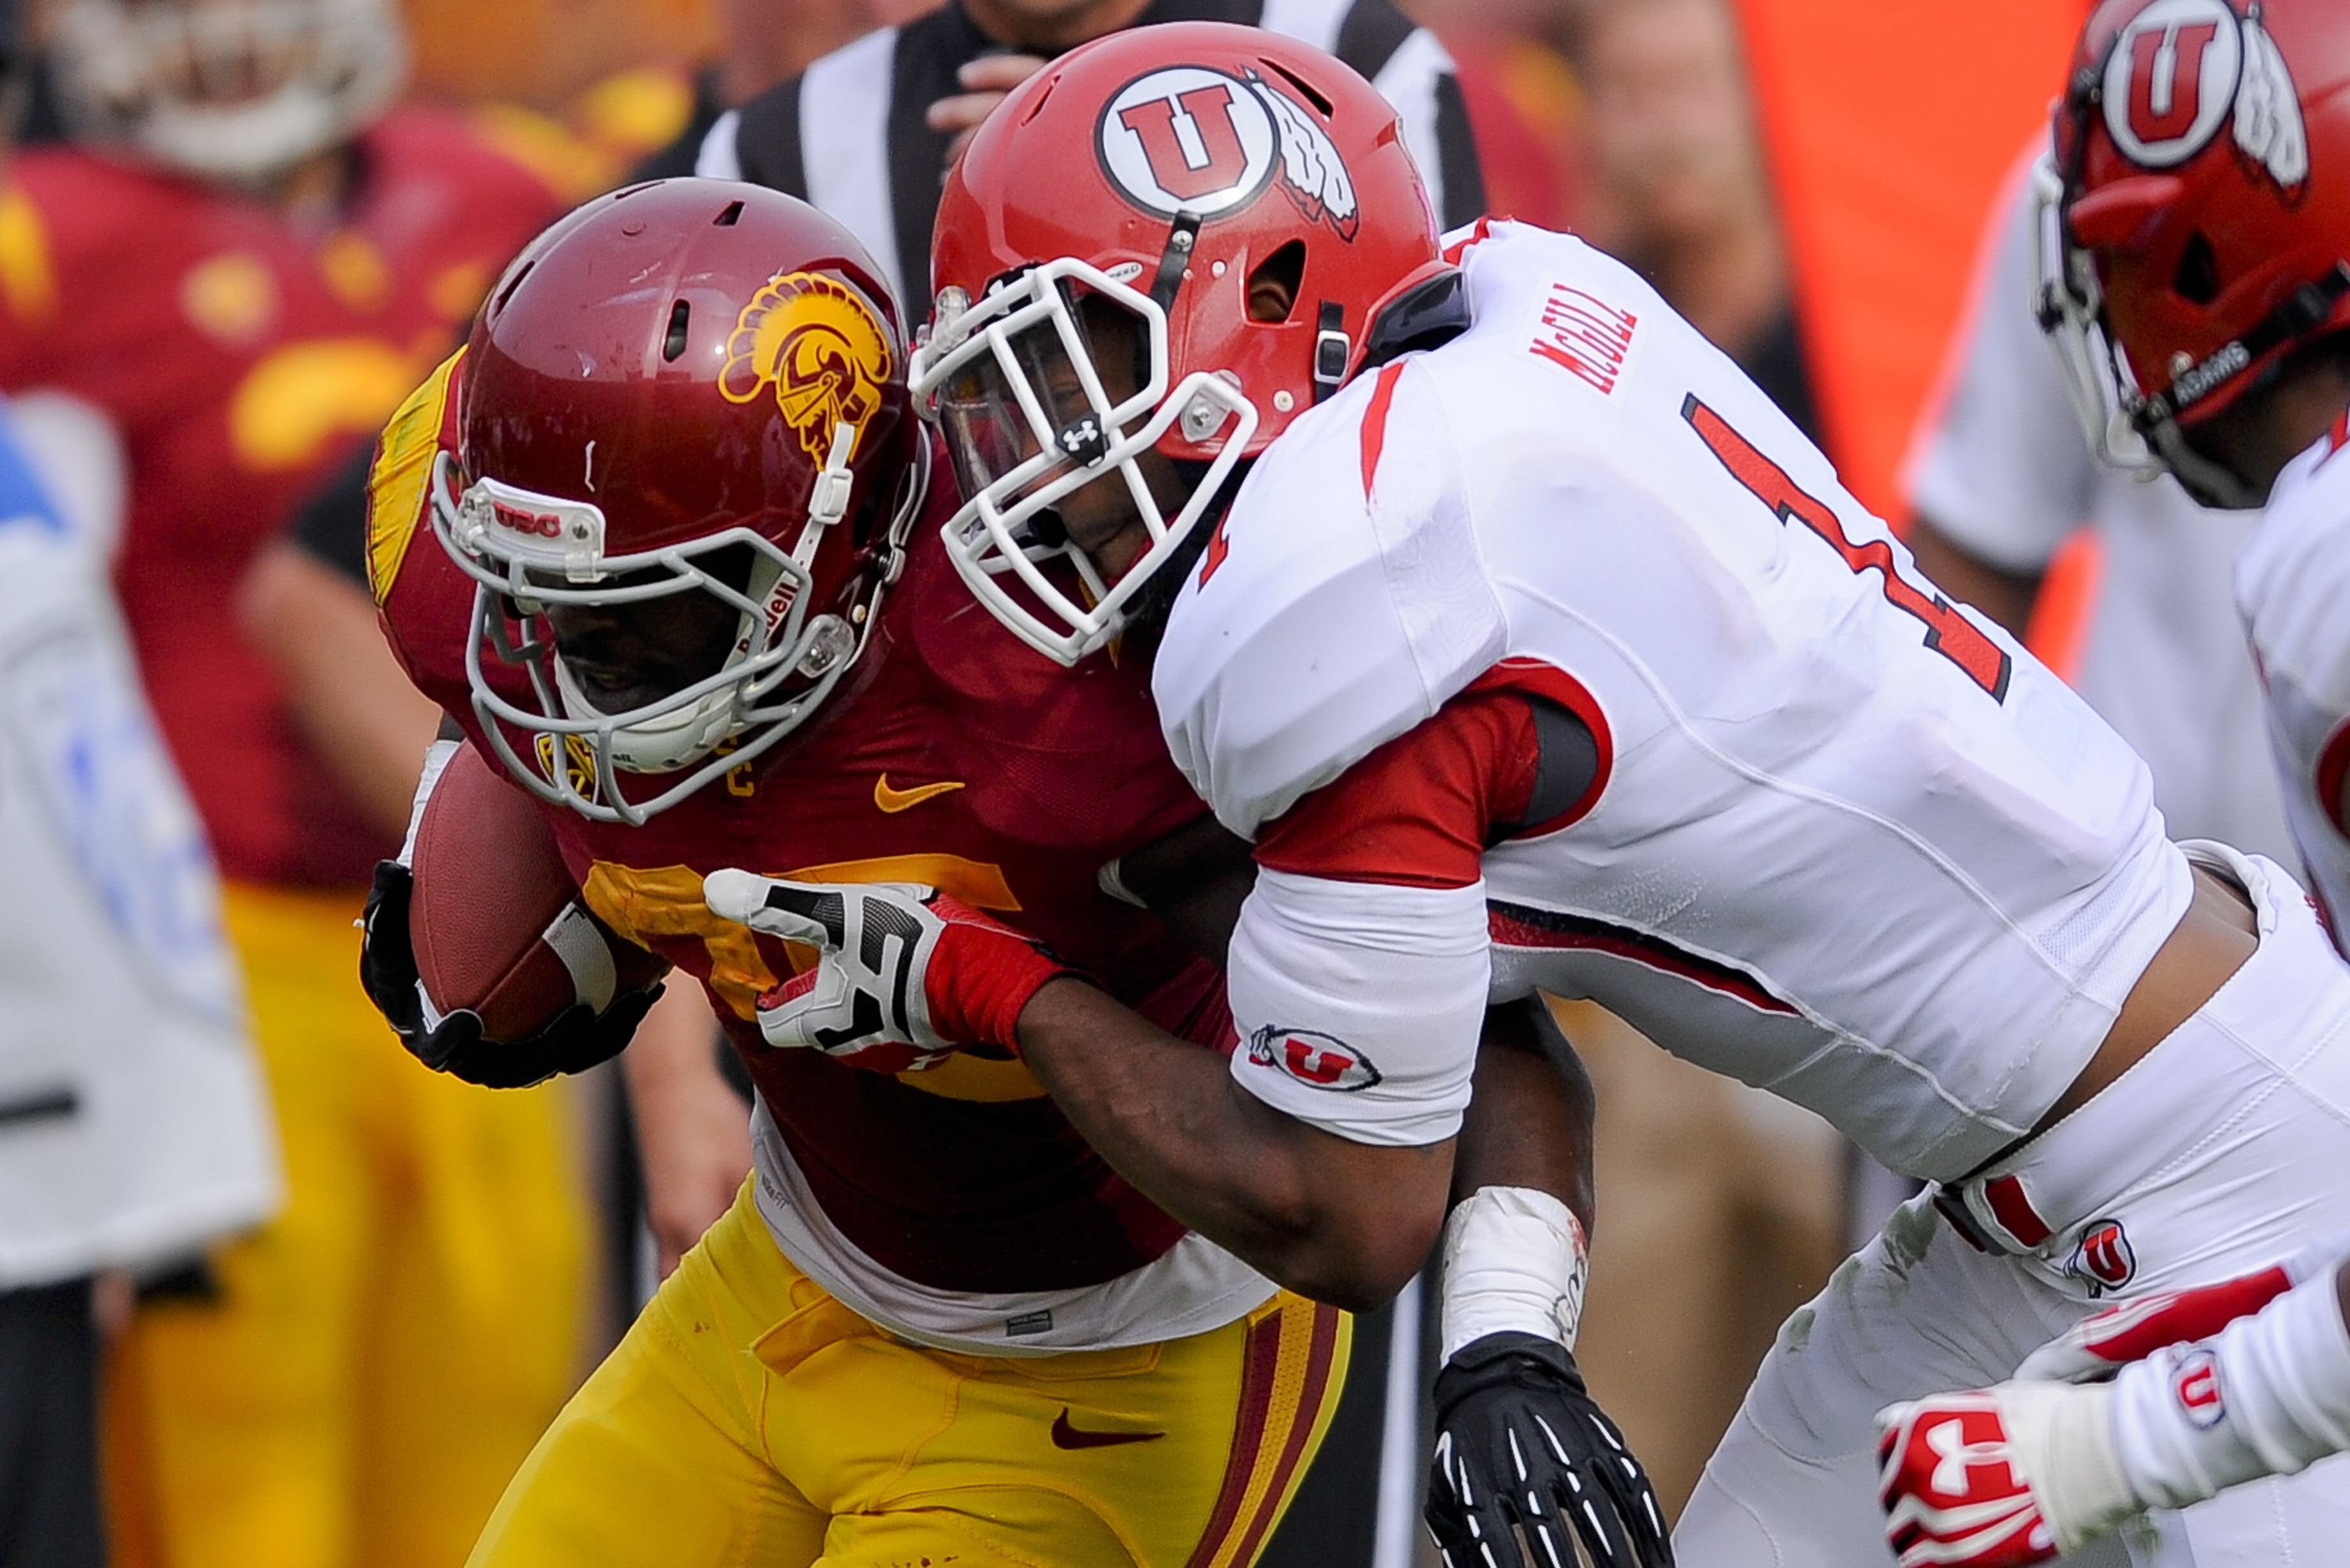 Keith McGill NFL Draft 2014: Highlights, Scouting Report for ...